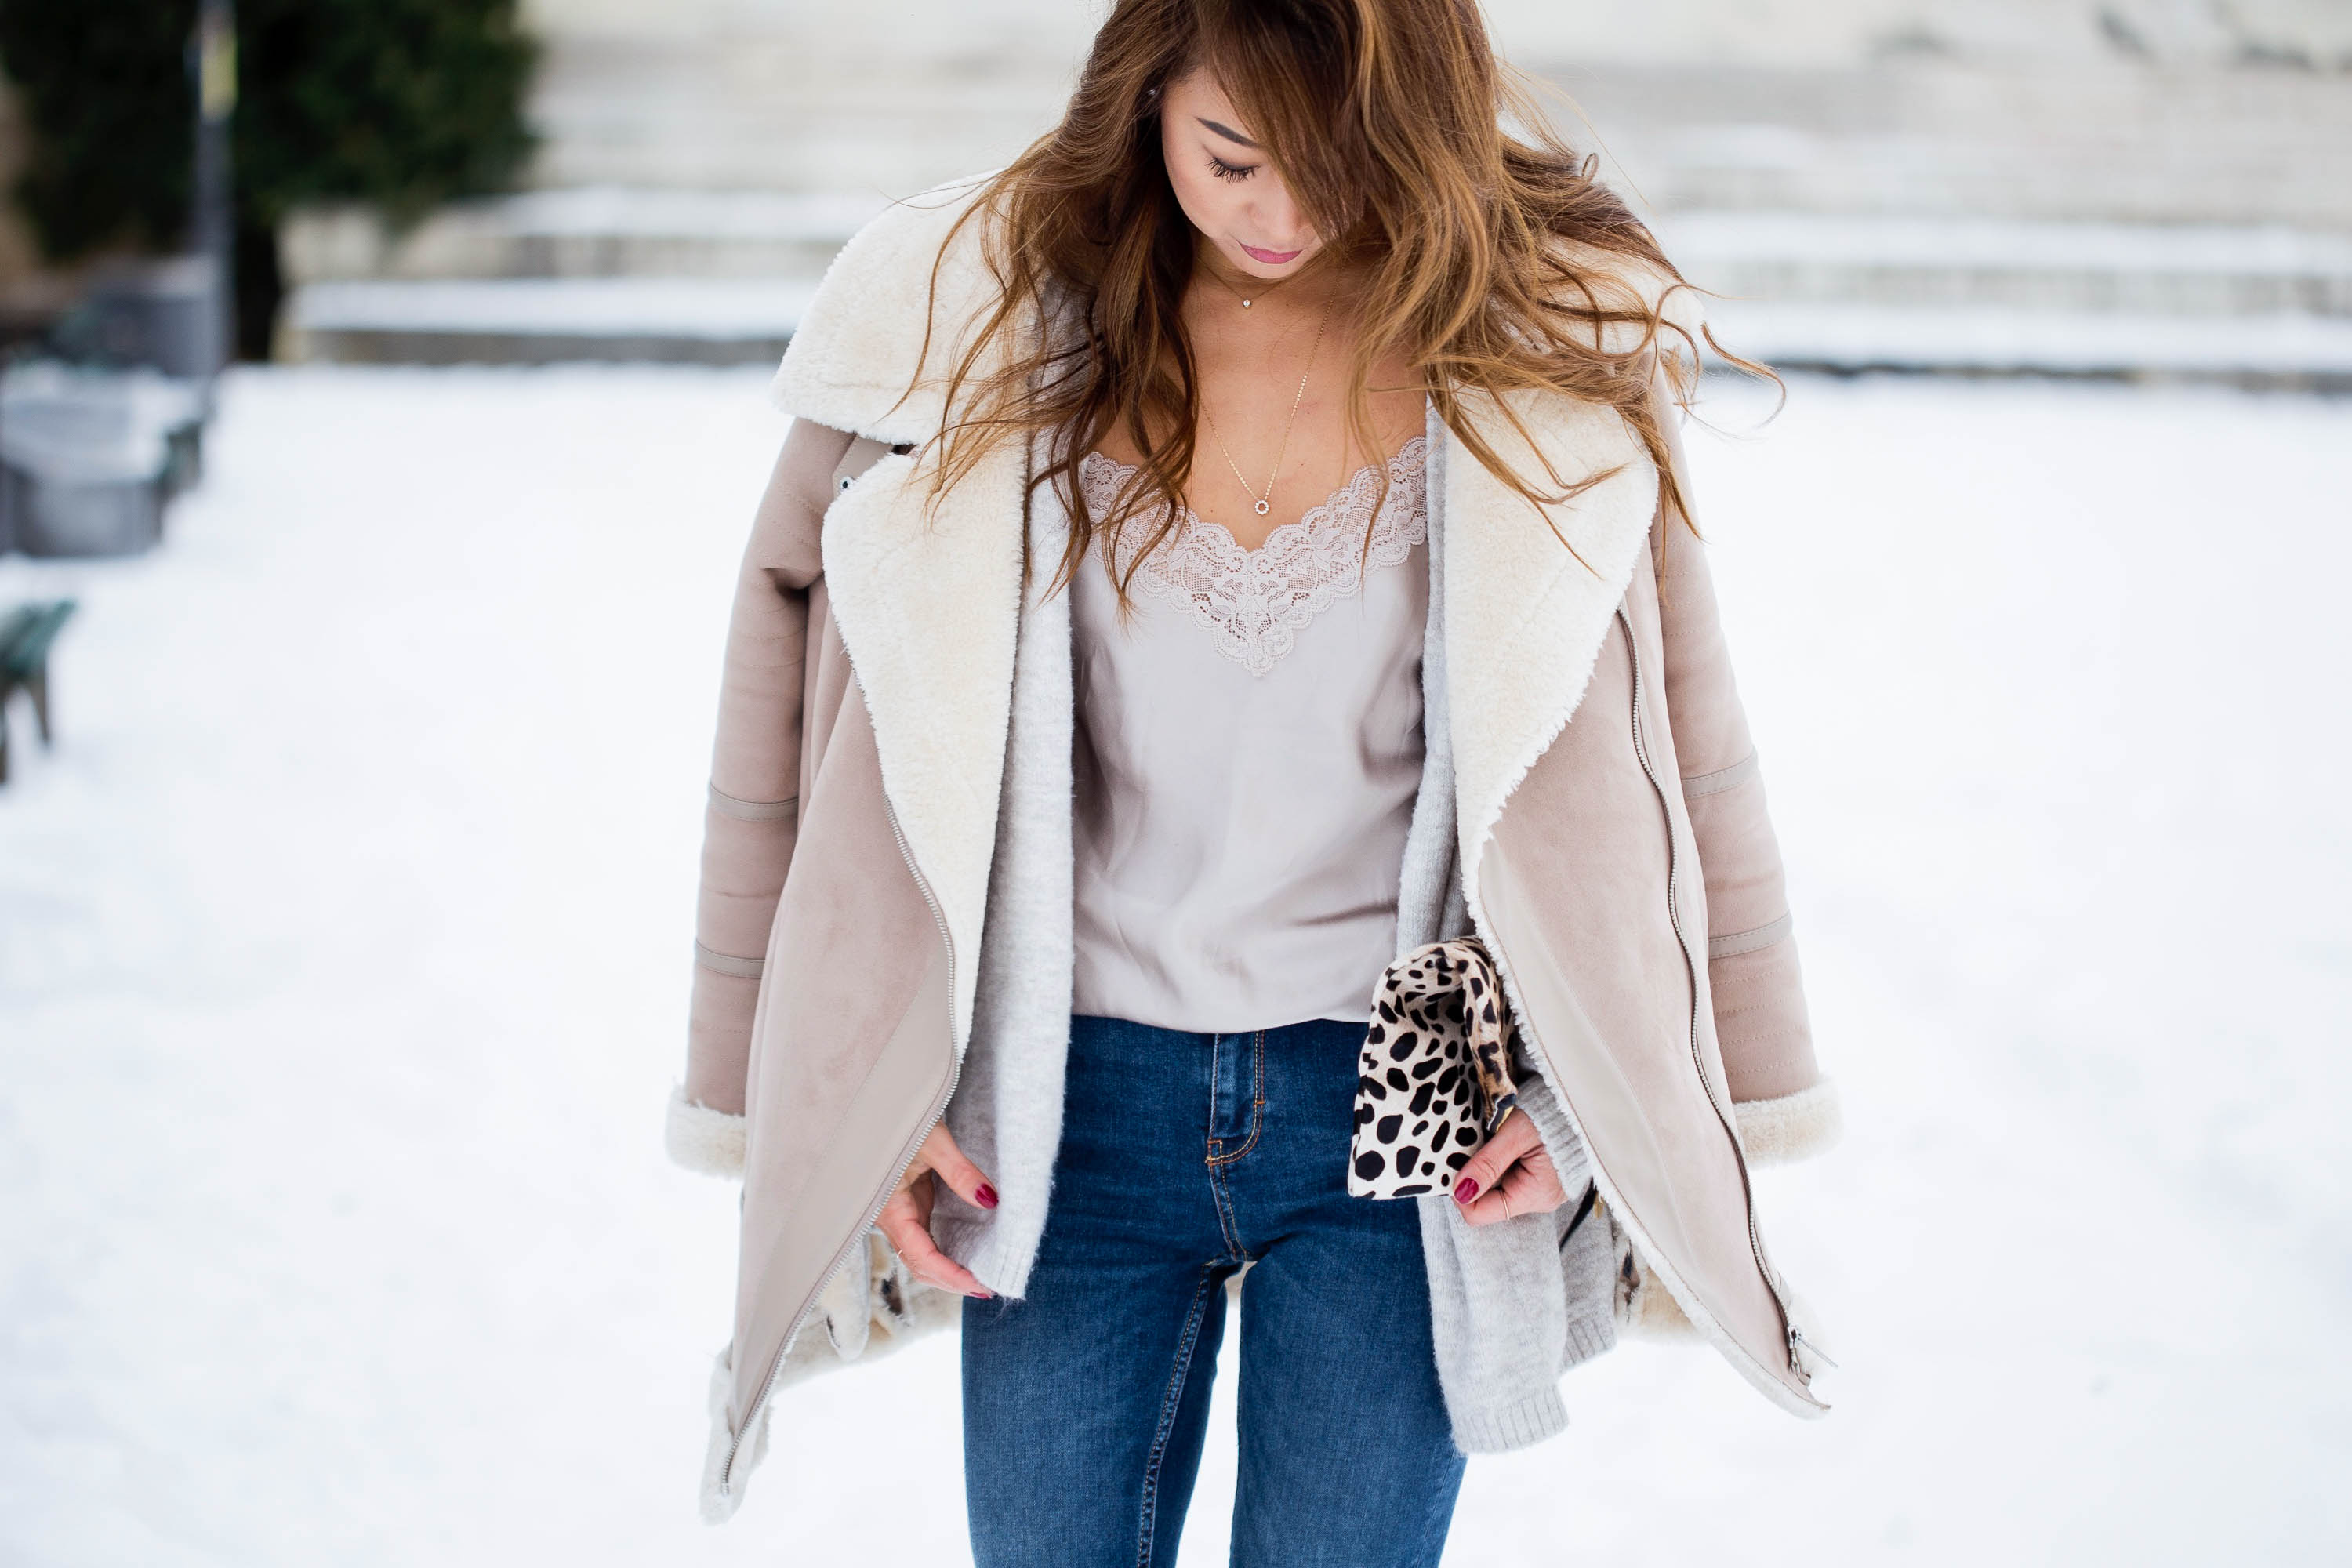 theclassycloud-shearling-jacket-camisole-winter-outfit (5 von 6)